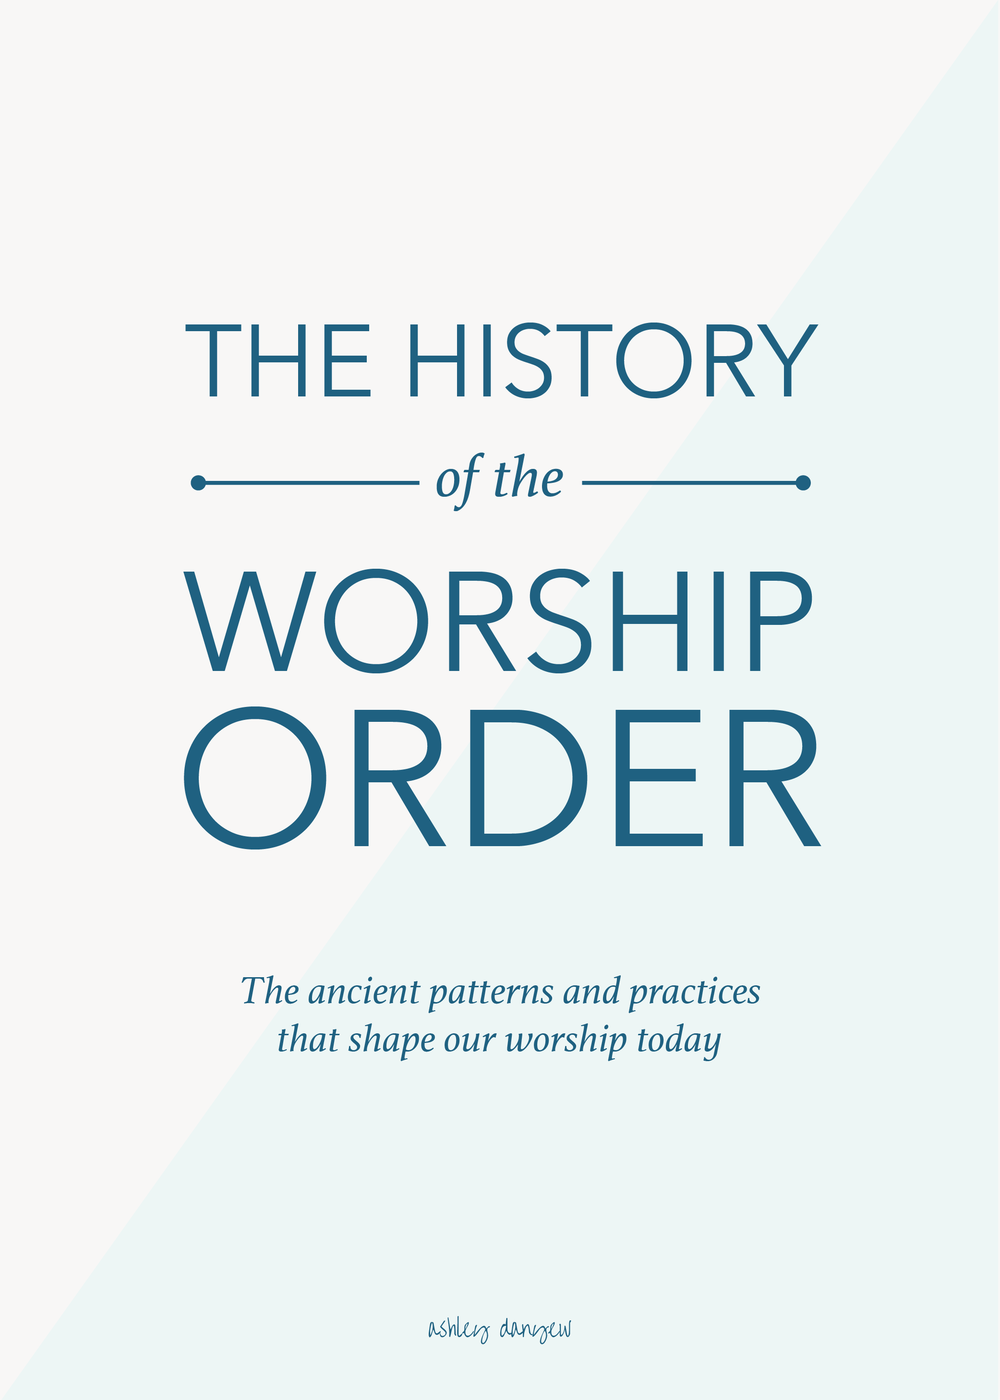 The-History-of-the-Worship-Order-01.png